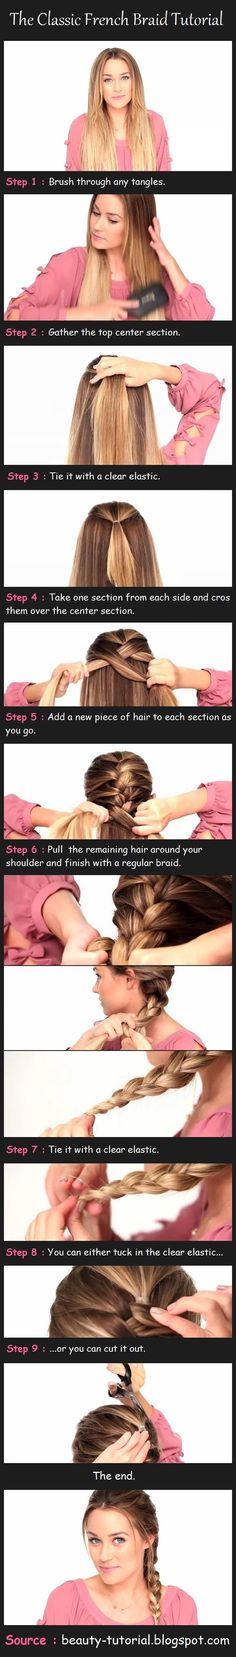 French Braiding made easy